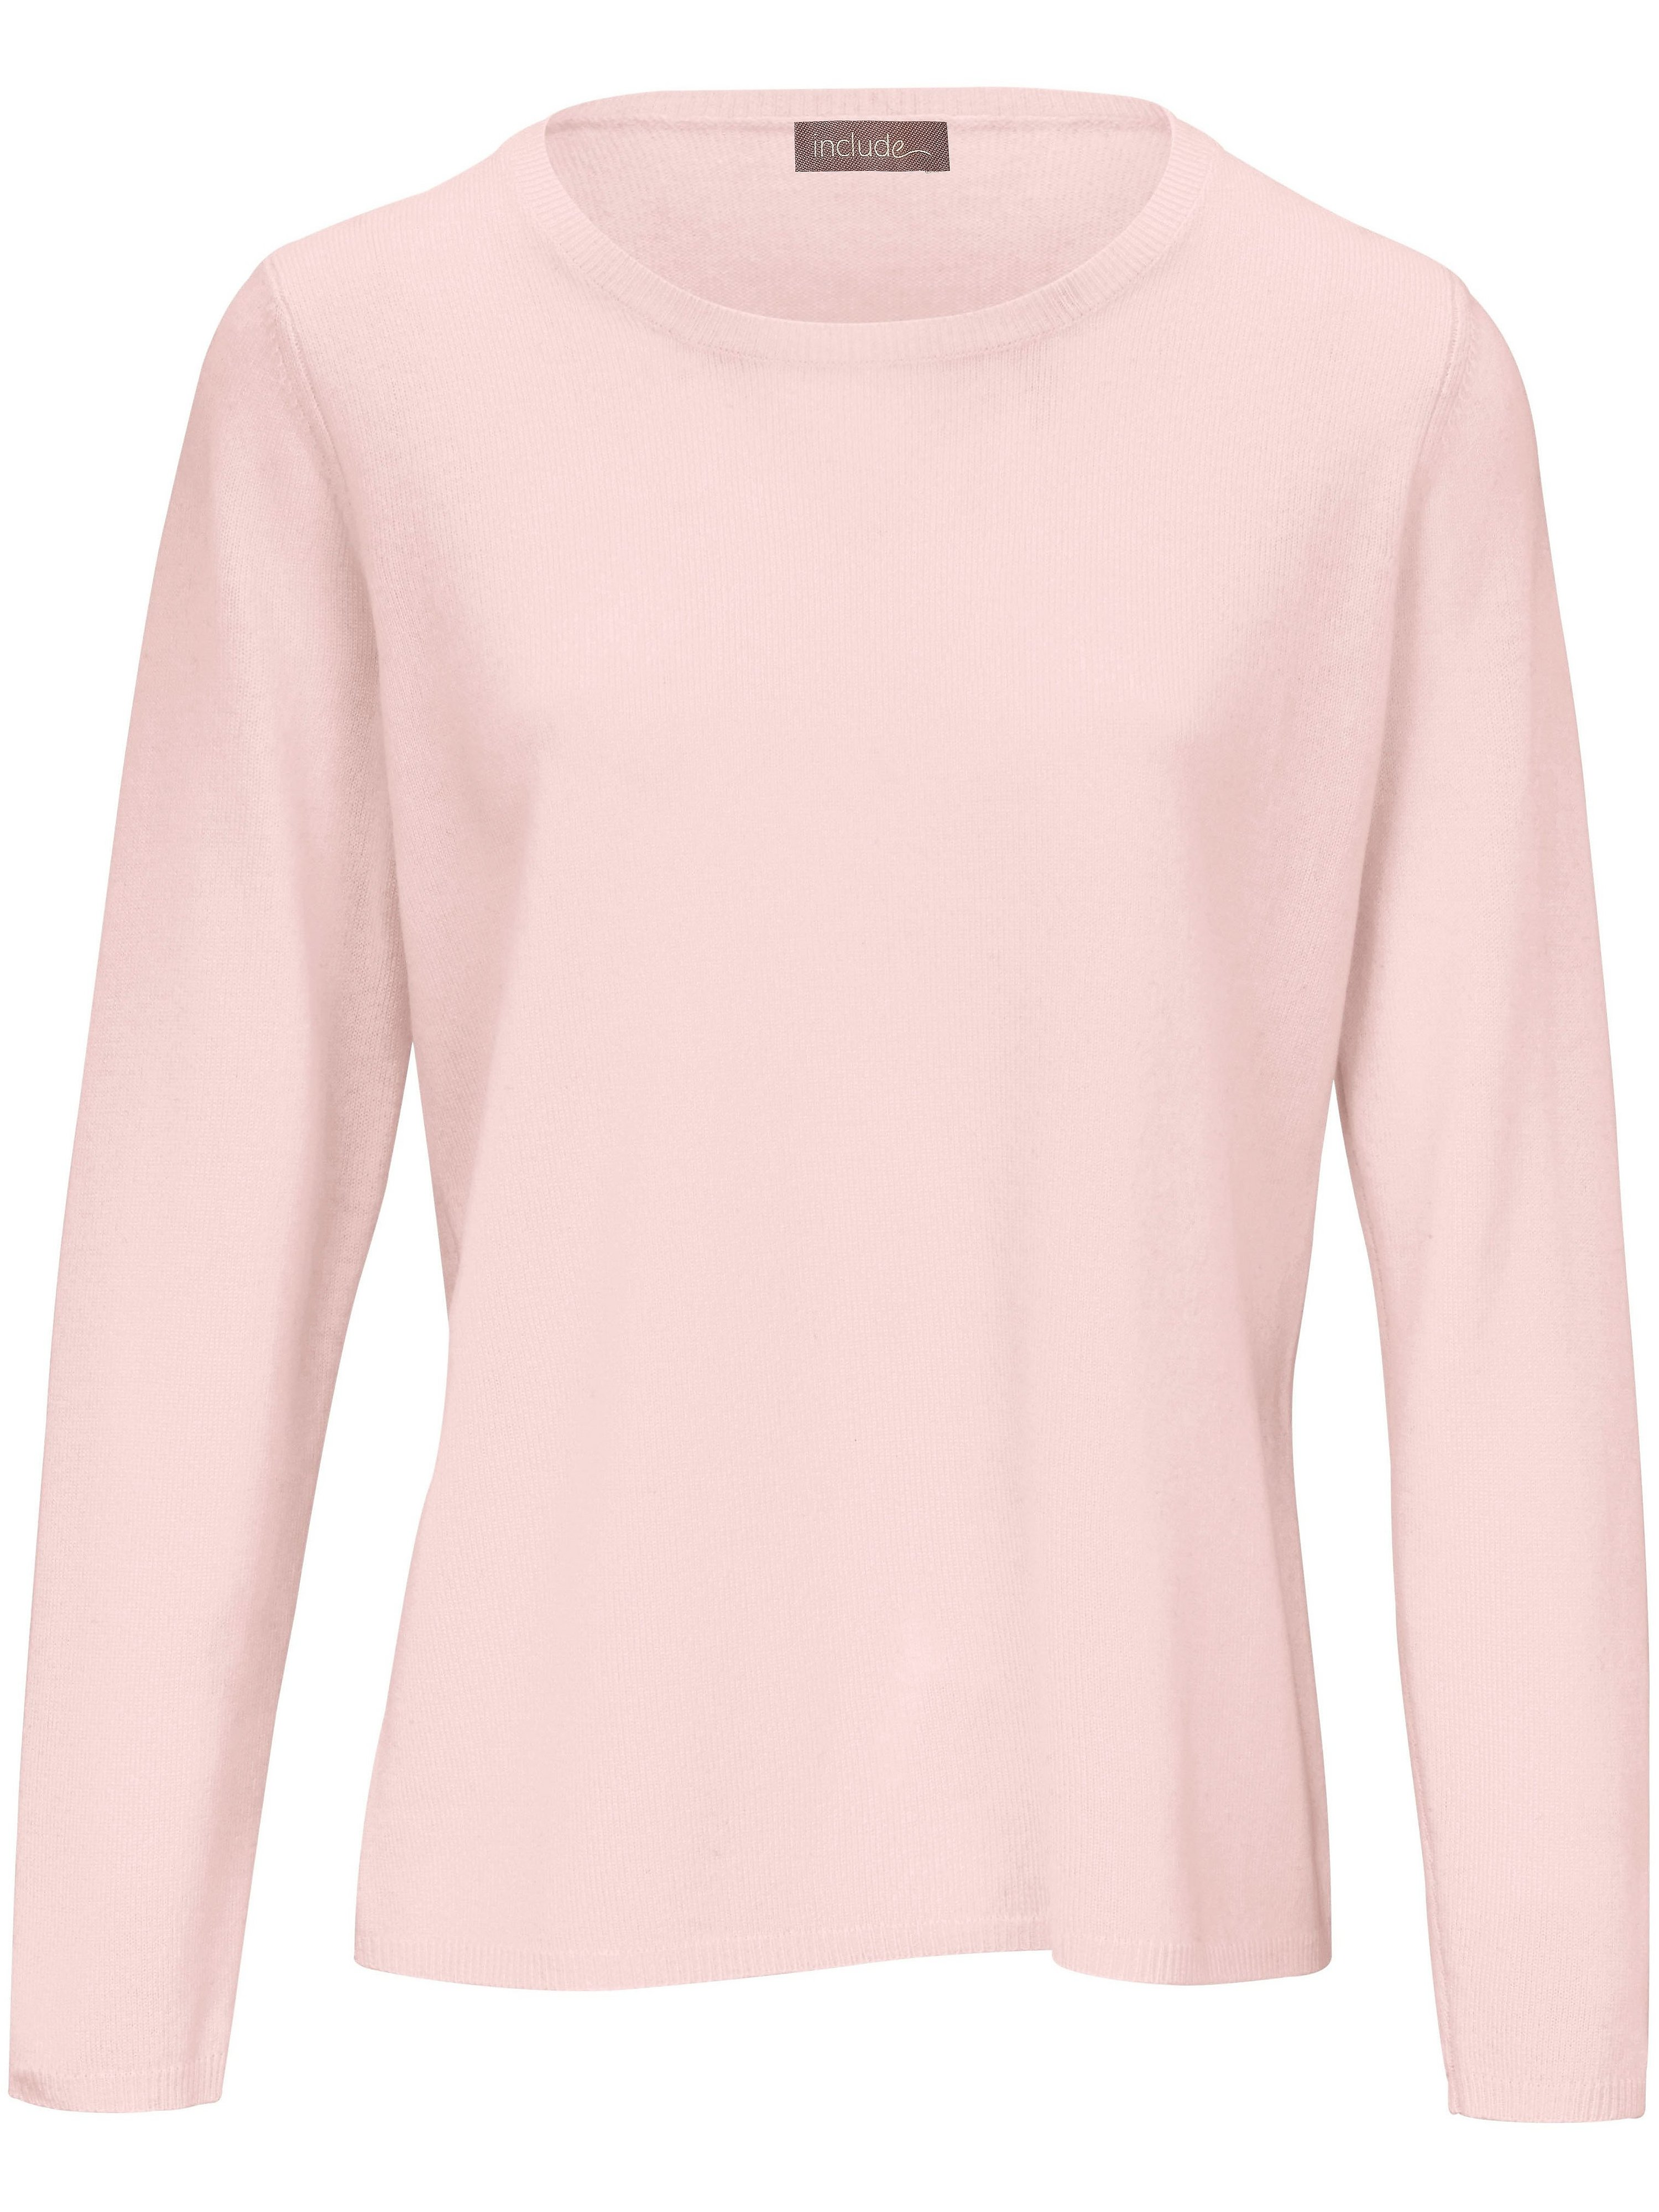 Round neck jumper in pure new wool and cashmere include pale pink